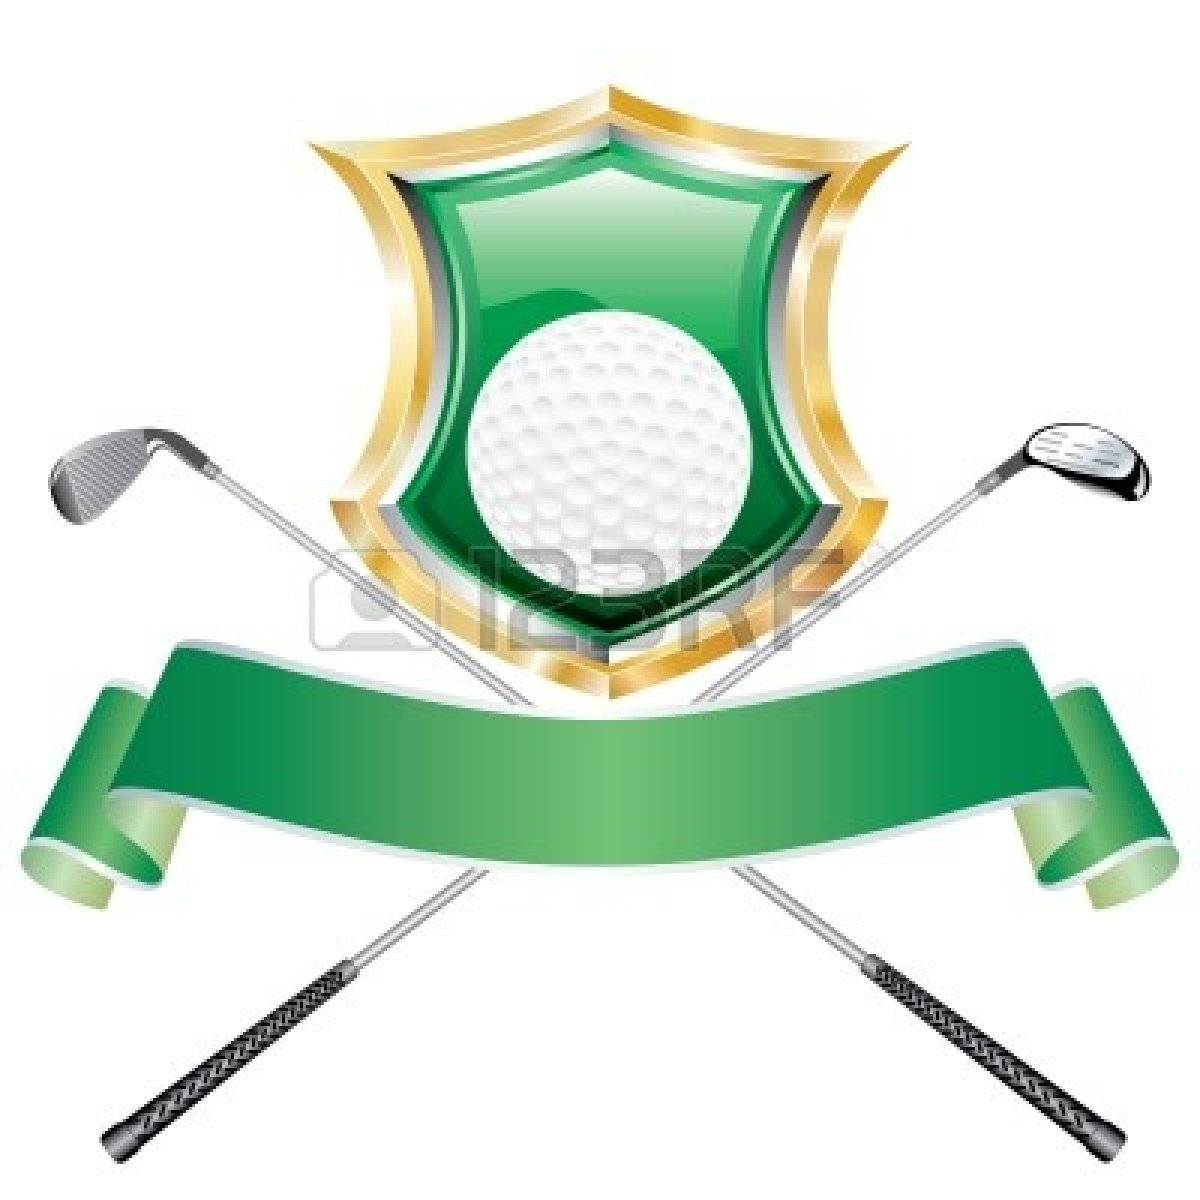 golf ball clipart free download best golf ball clipart on